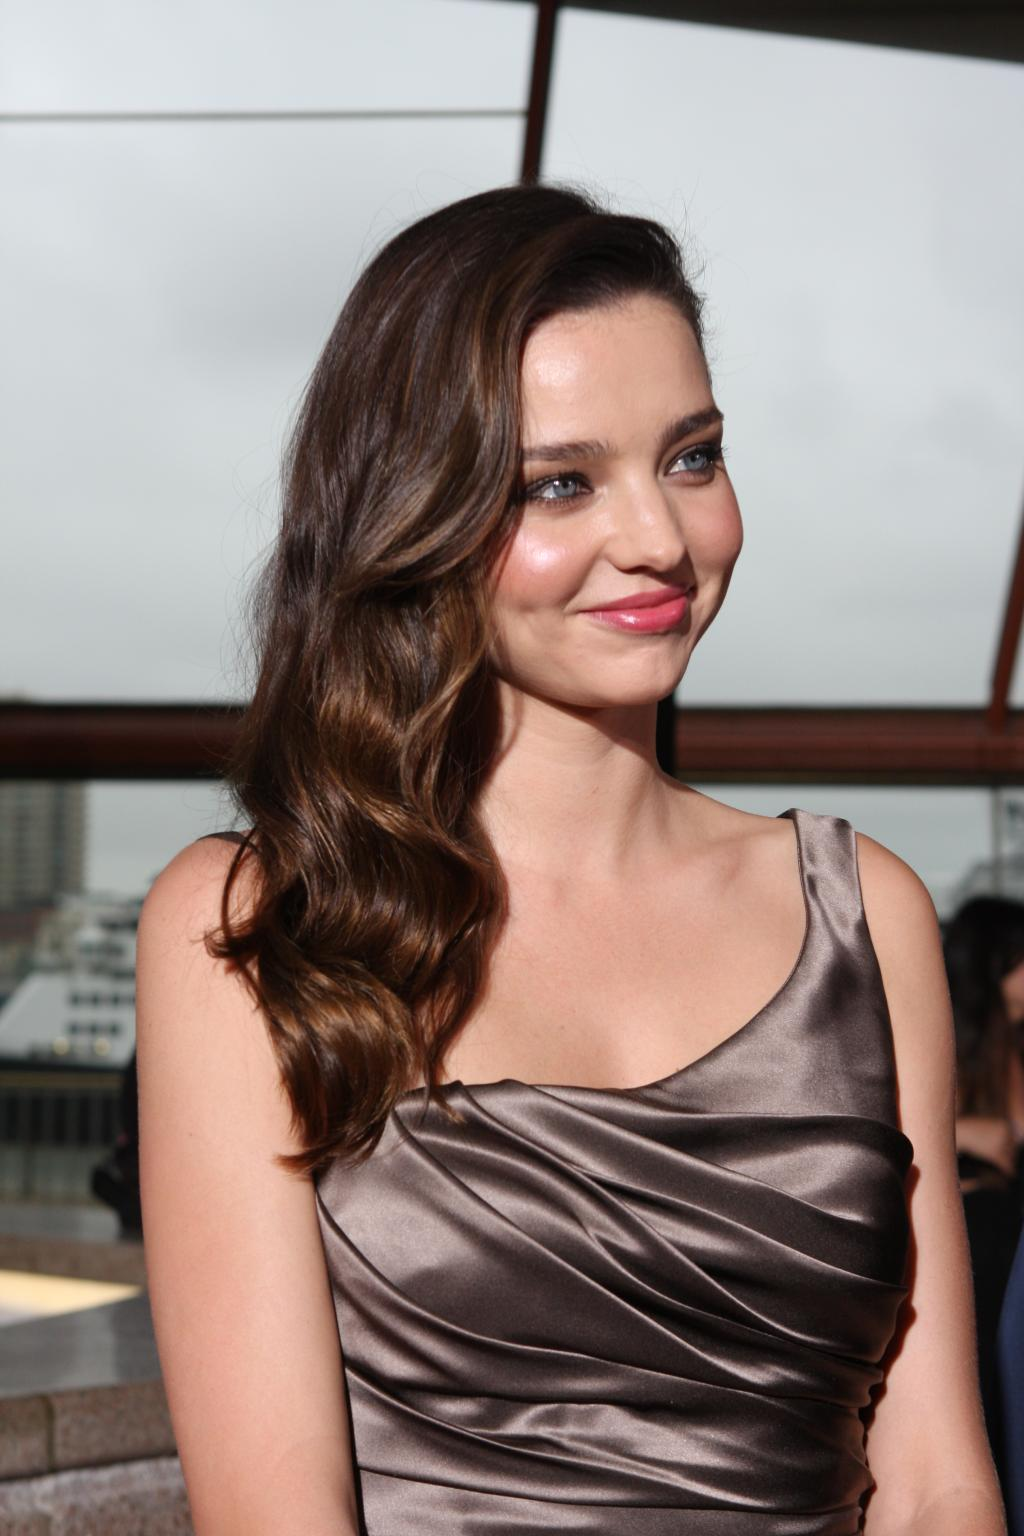 Miranda Kerr - Wikipedia, The Free Encyclopedia